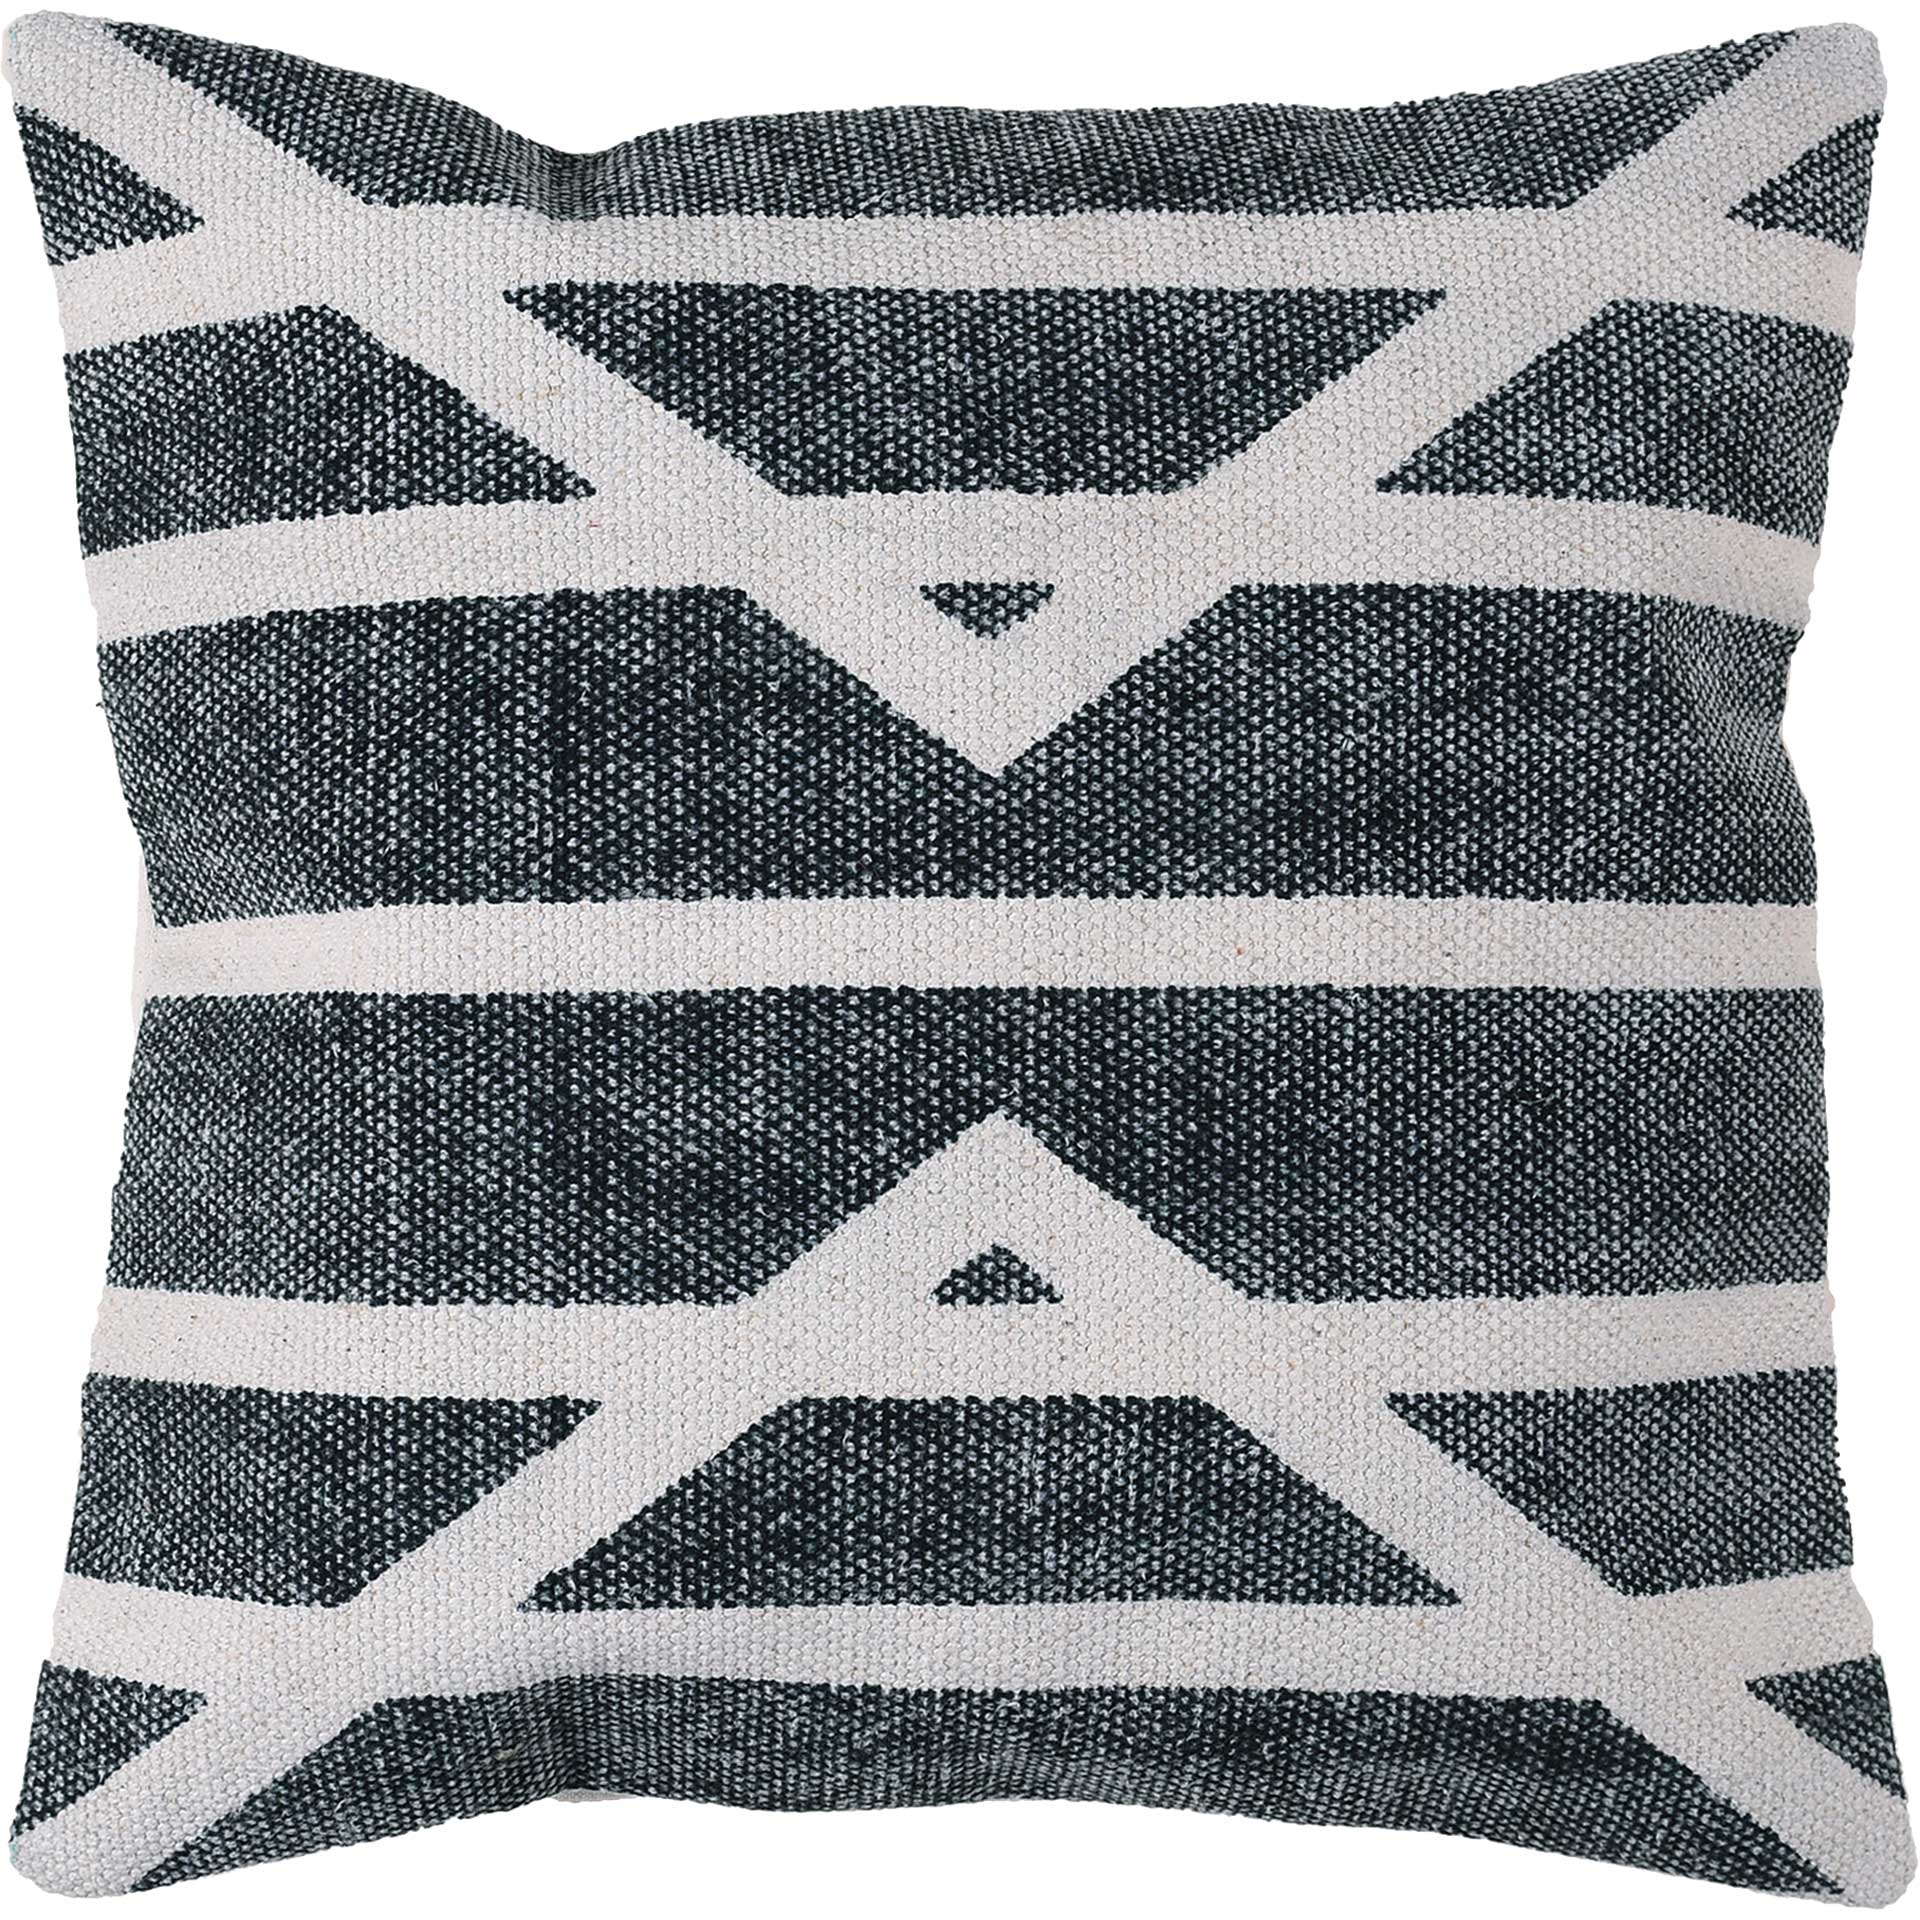 Centerpoint Stripe Block Print Pillow